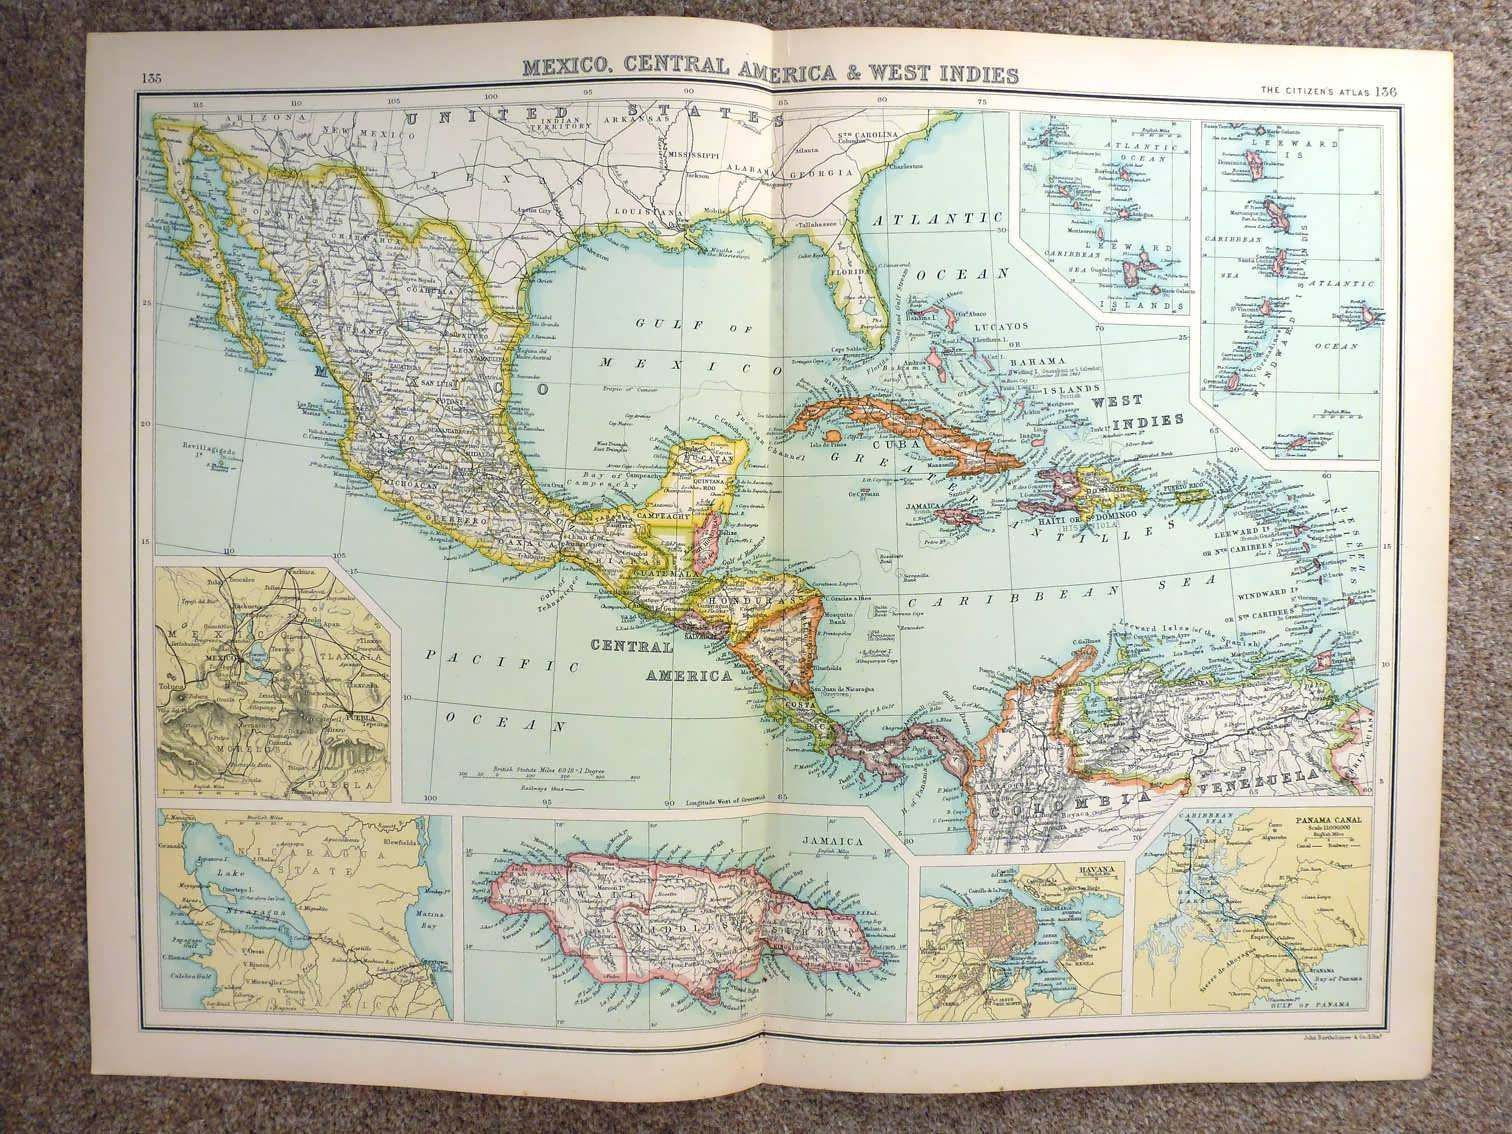 Map Of Us States Bordering Mexico%0A      Map of Mexico  Central America And The West Indies   eBay